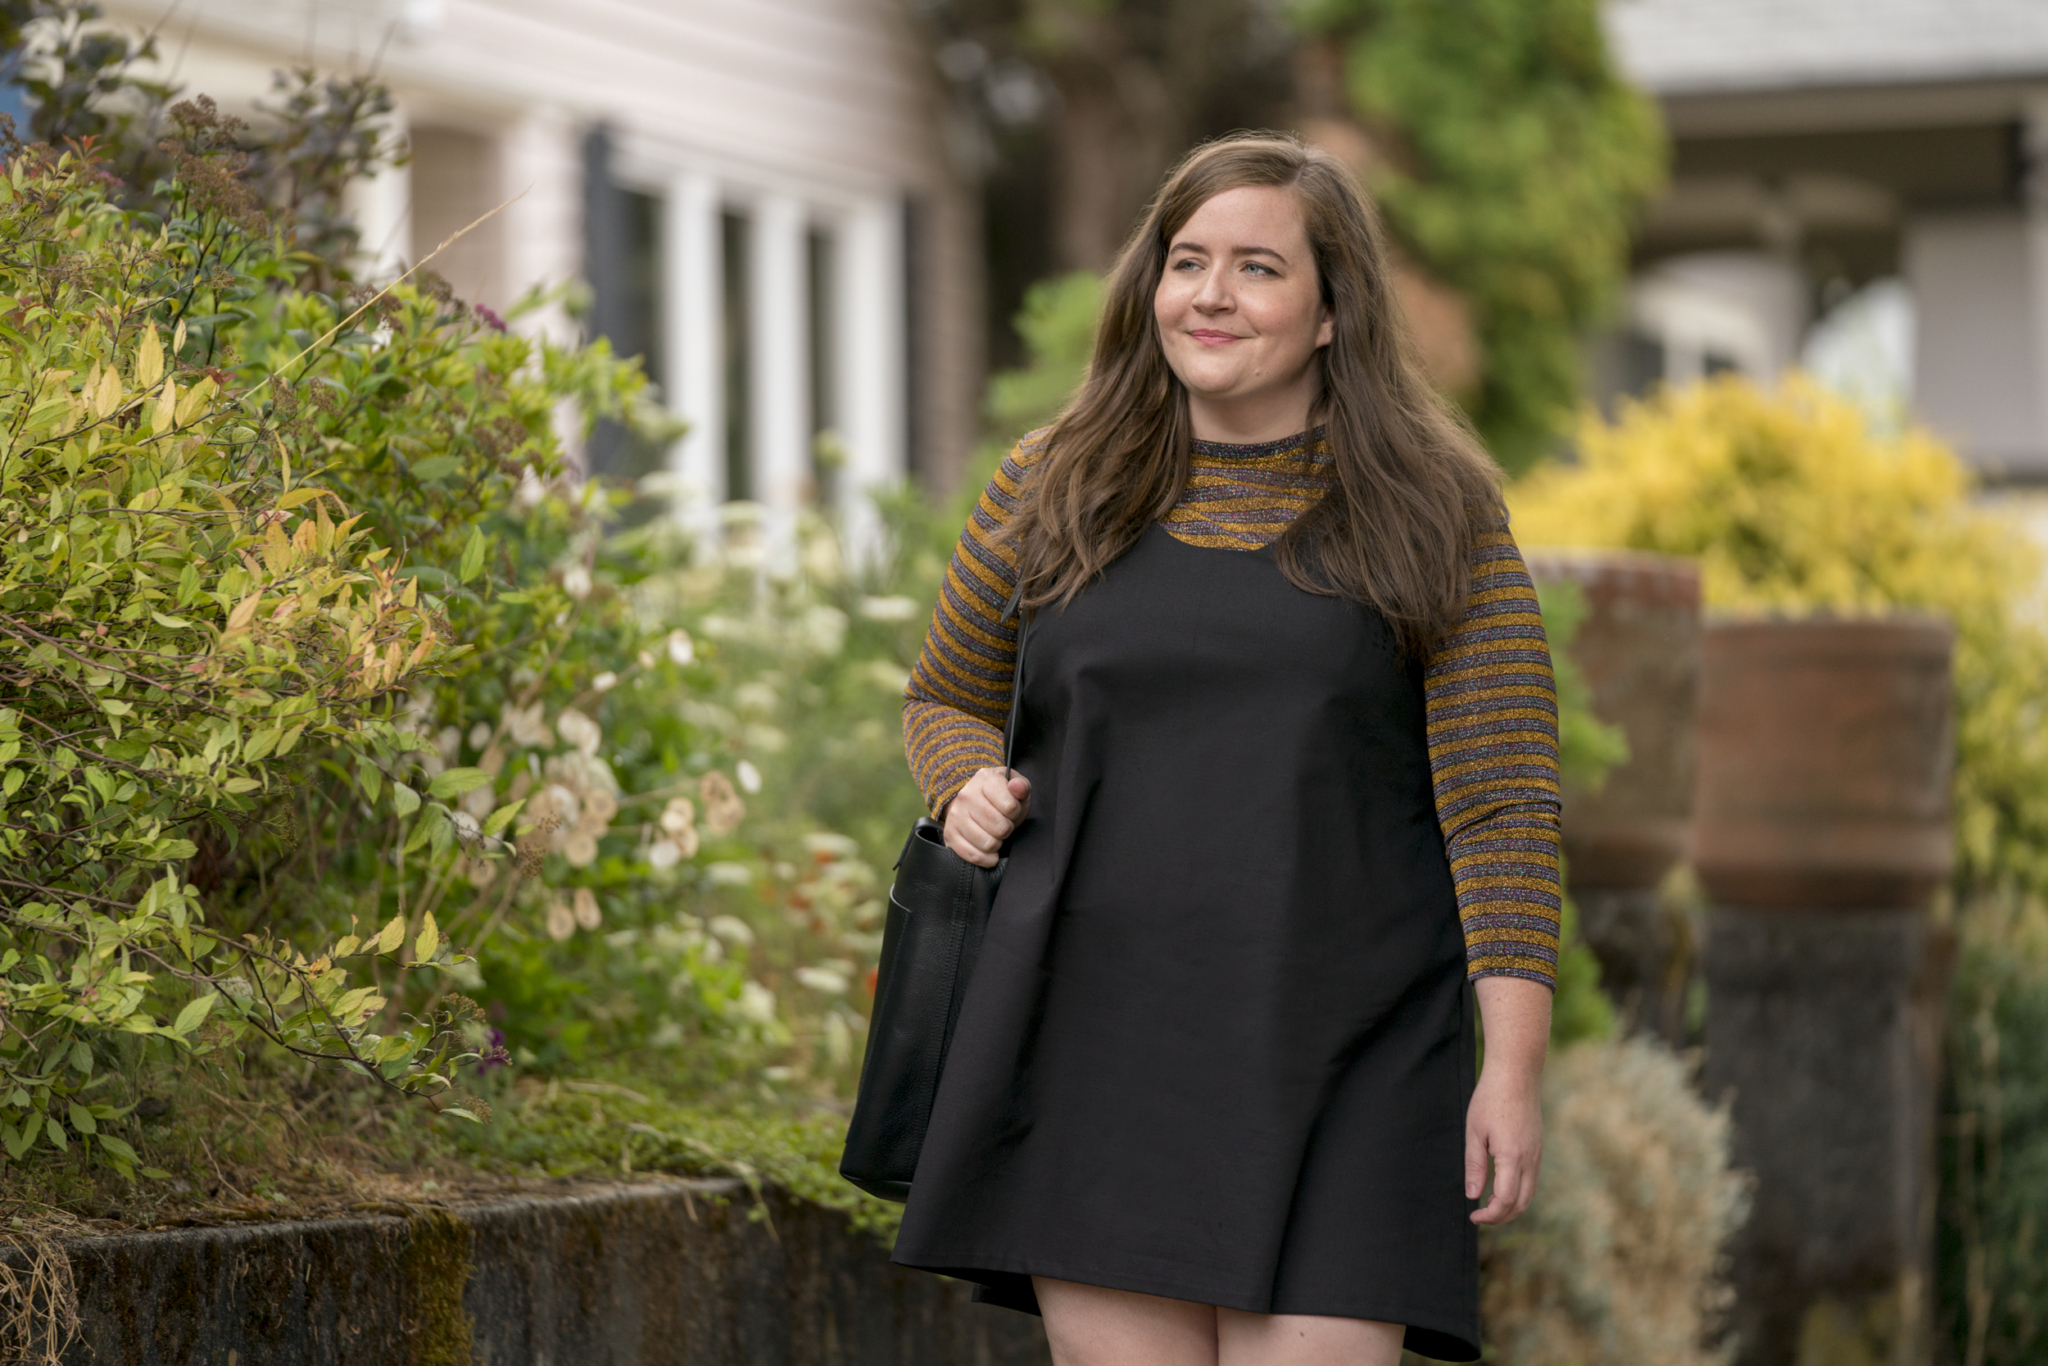 Aidy Bryant On Solo Series 'Shrill' And Her Future With 'Saturday Night Live'